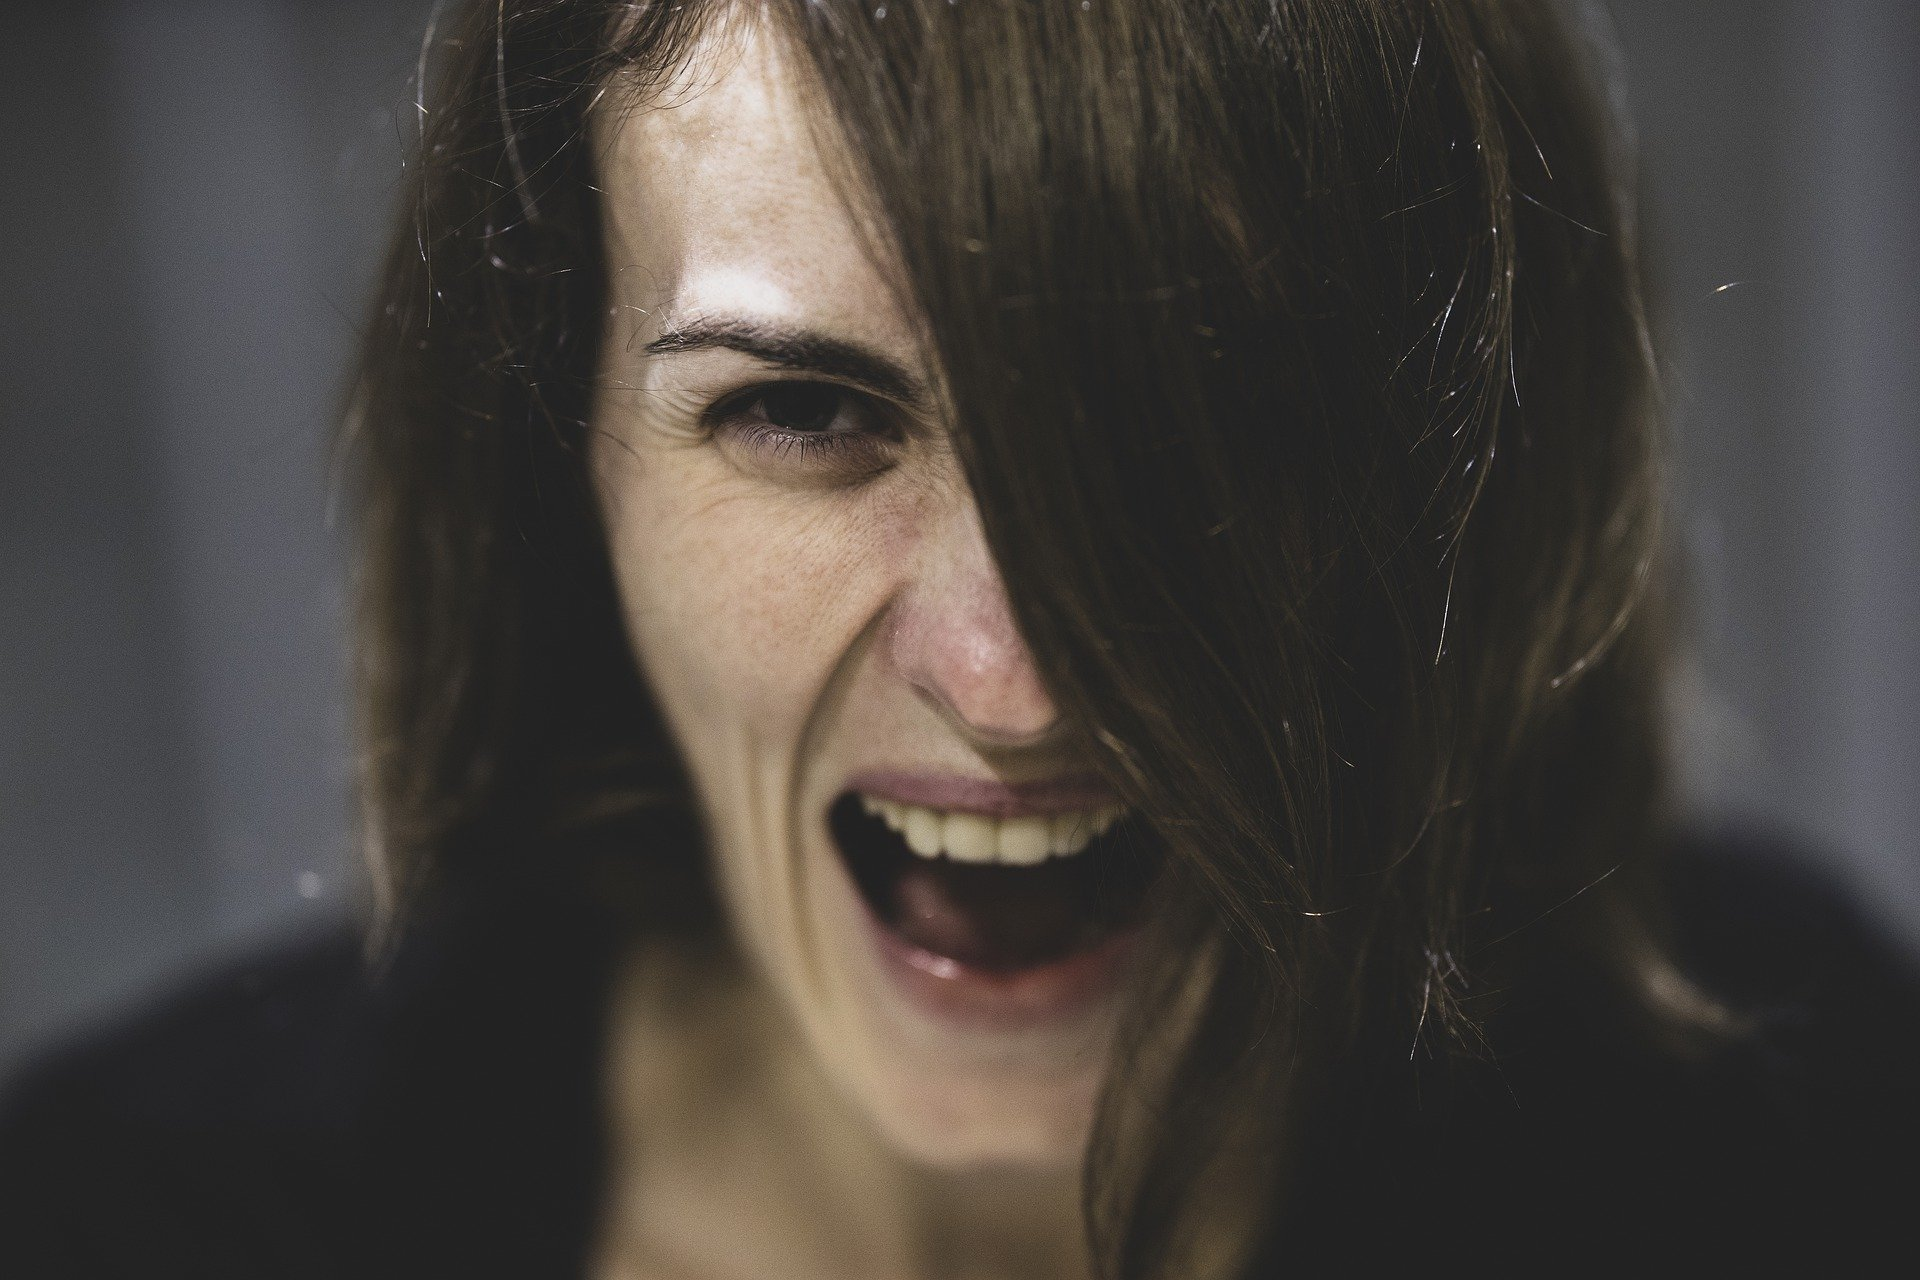 A headshot of a woman shouting with her mouth wide open   Photo: Pixabay/Engin Akyurt